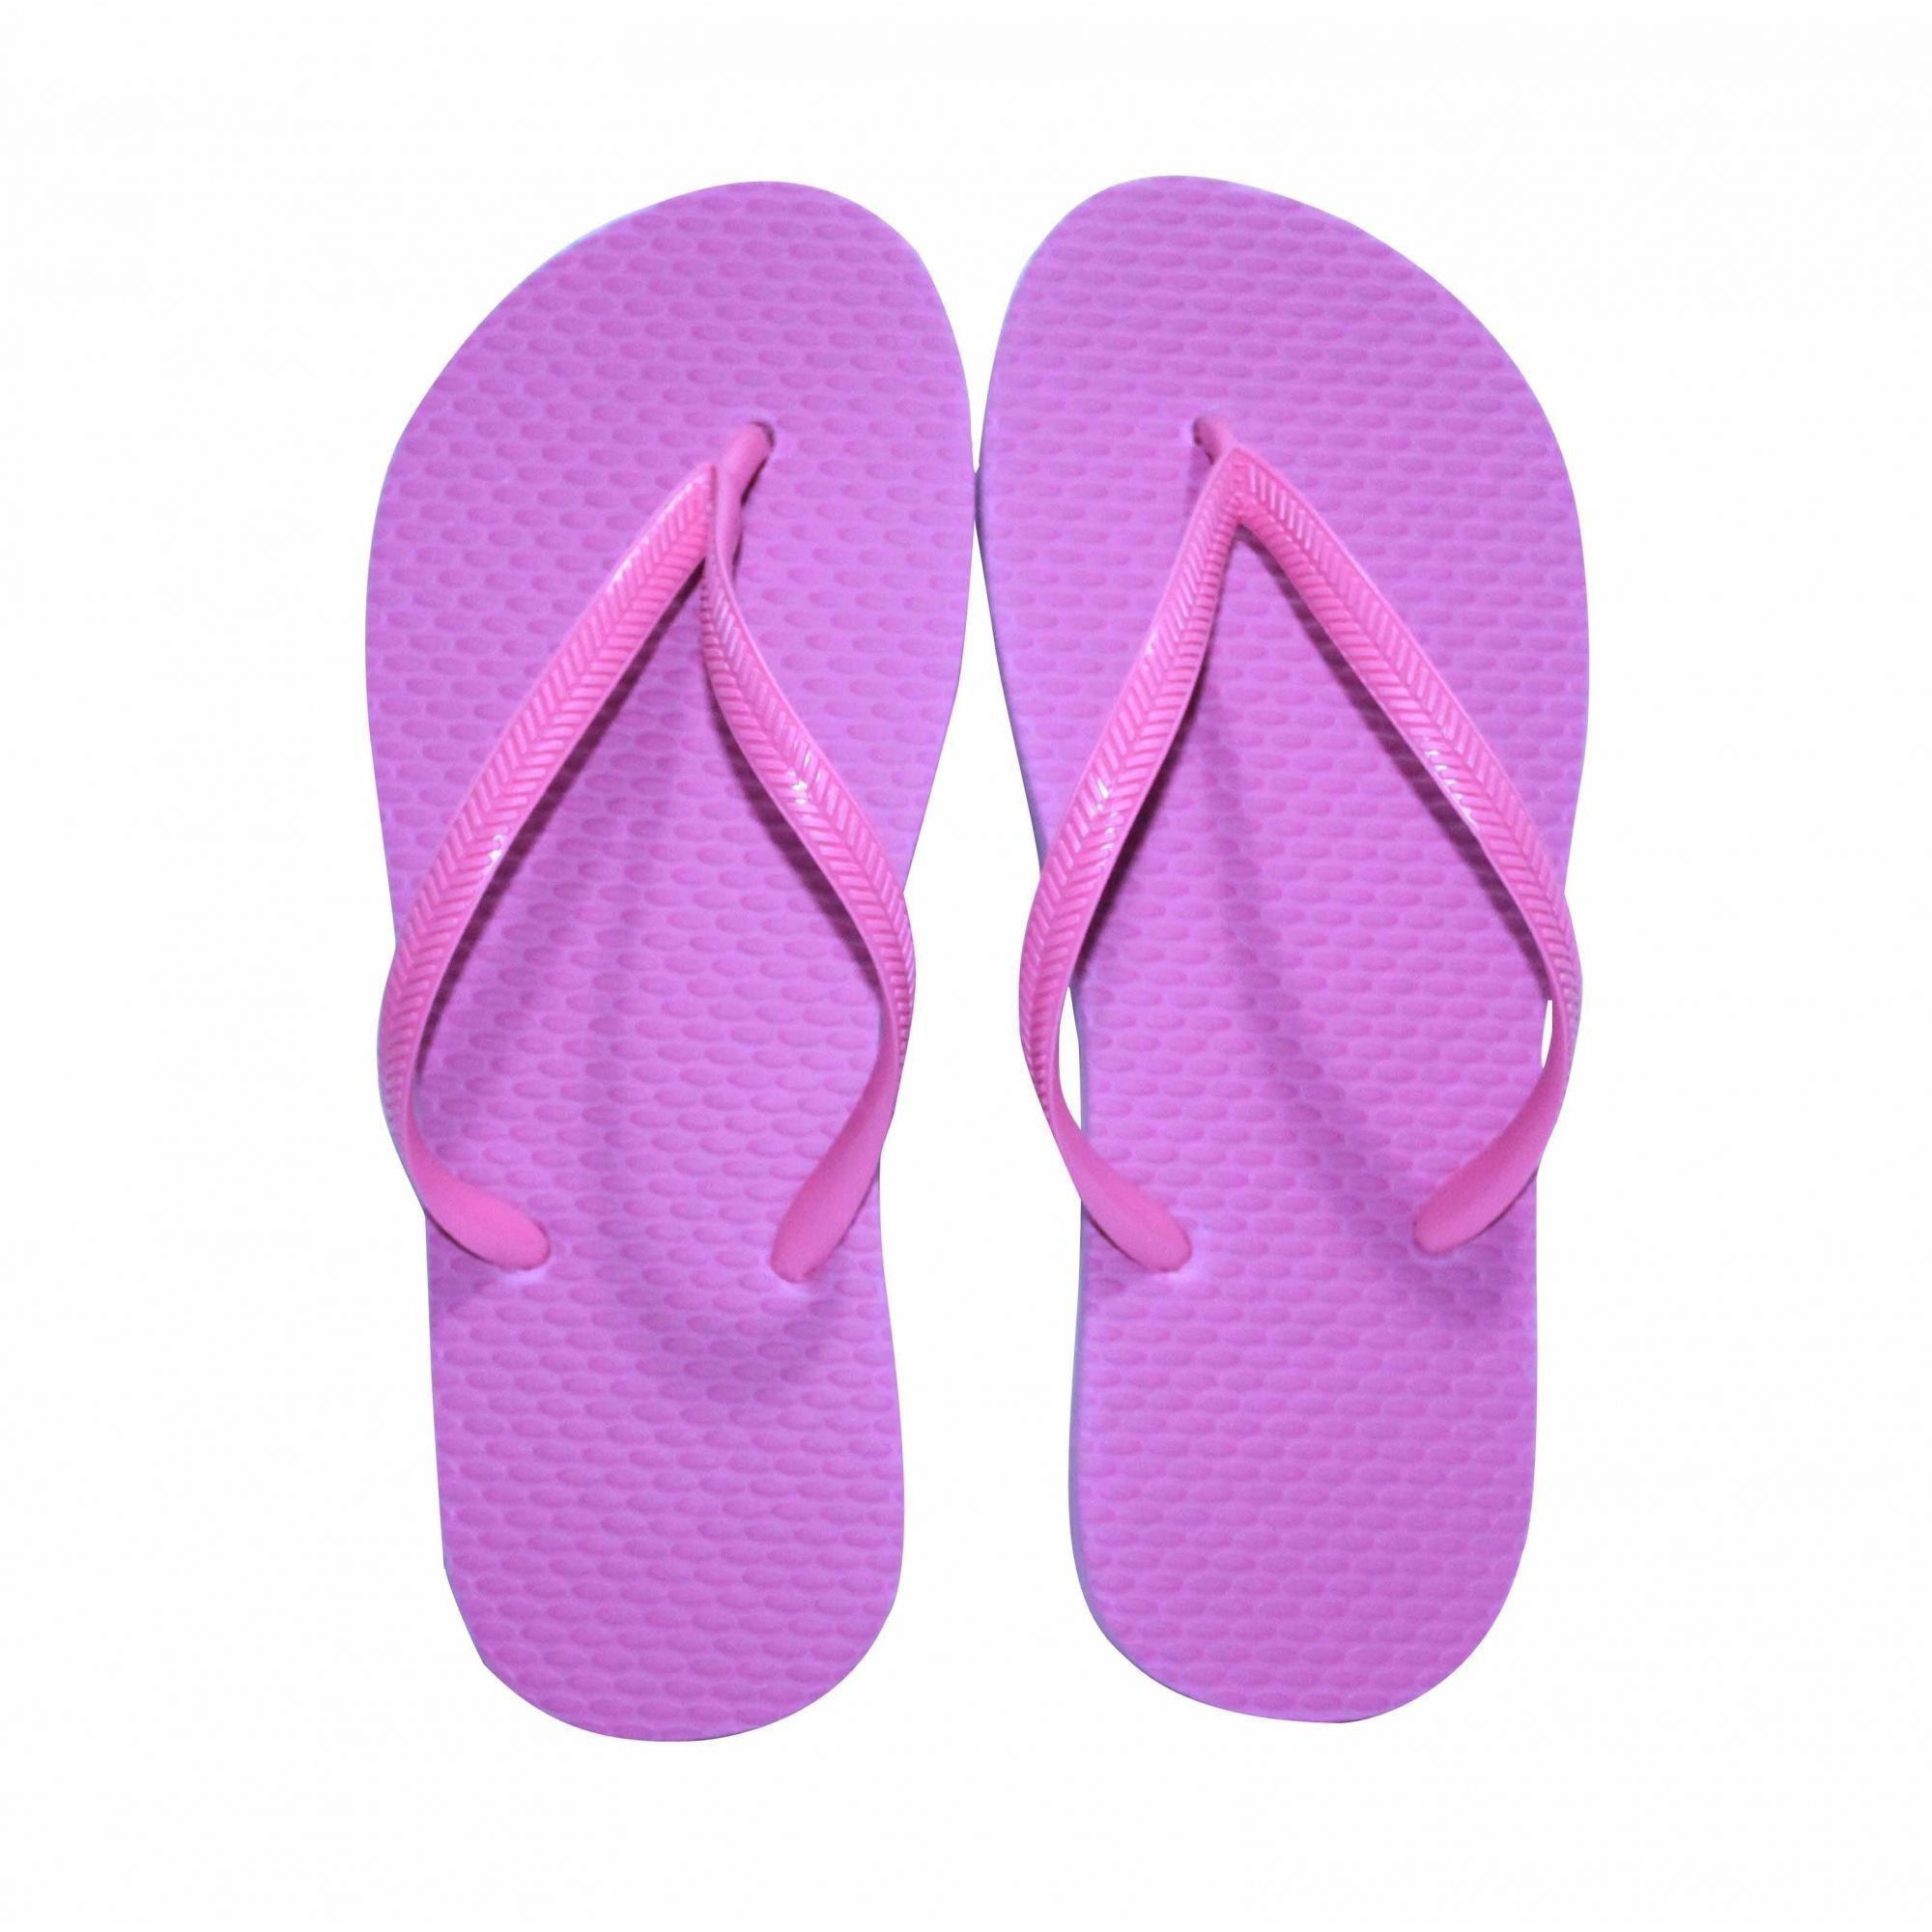 Chinelo Para Personalizar Silk Kit Com 50 Pares - Adulto